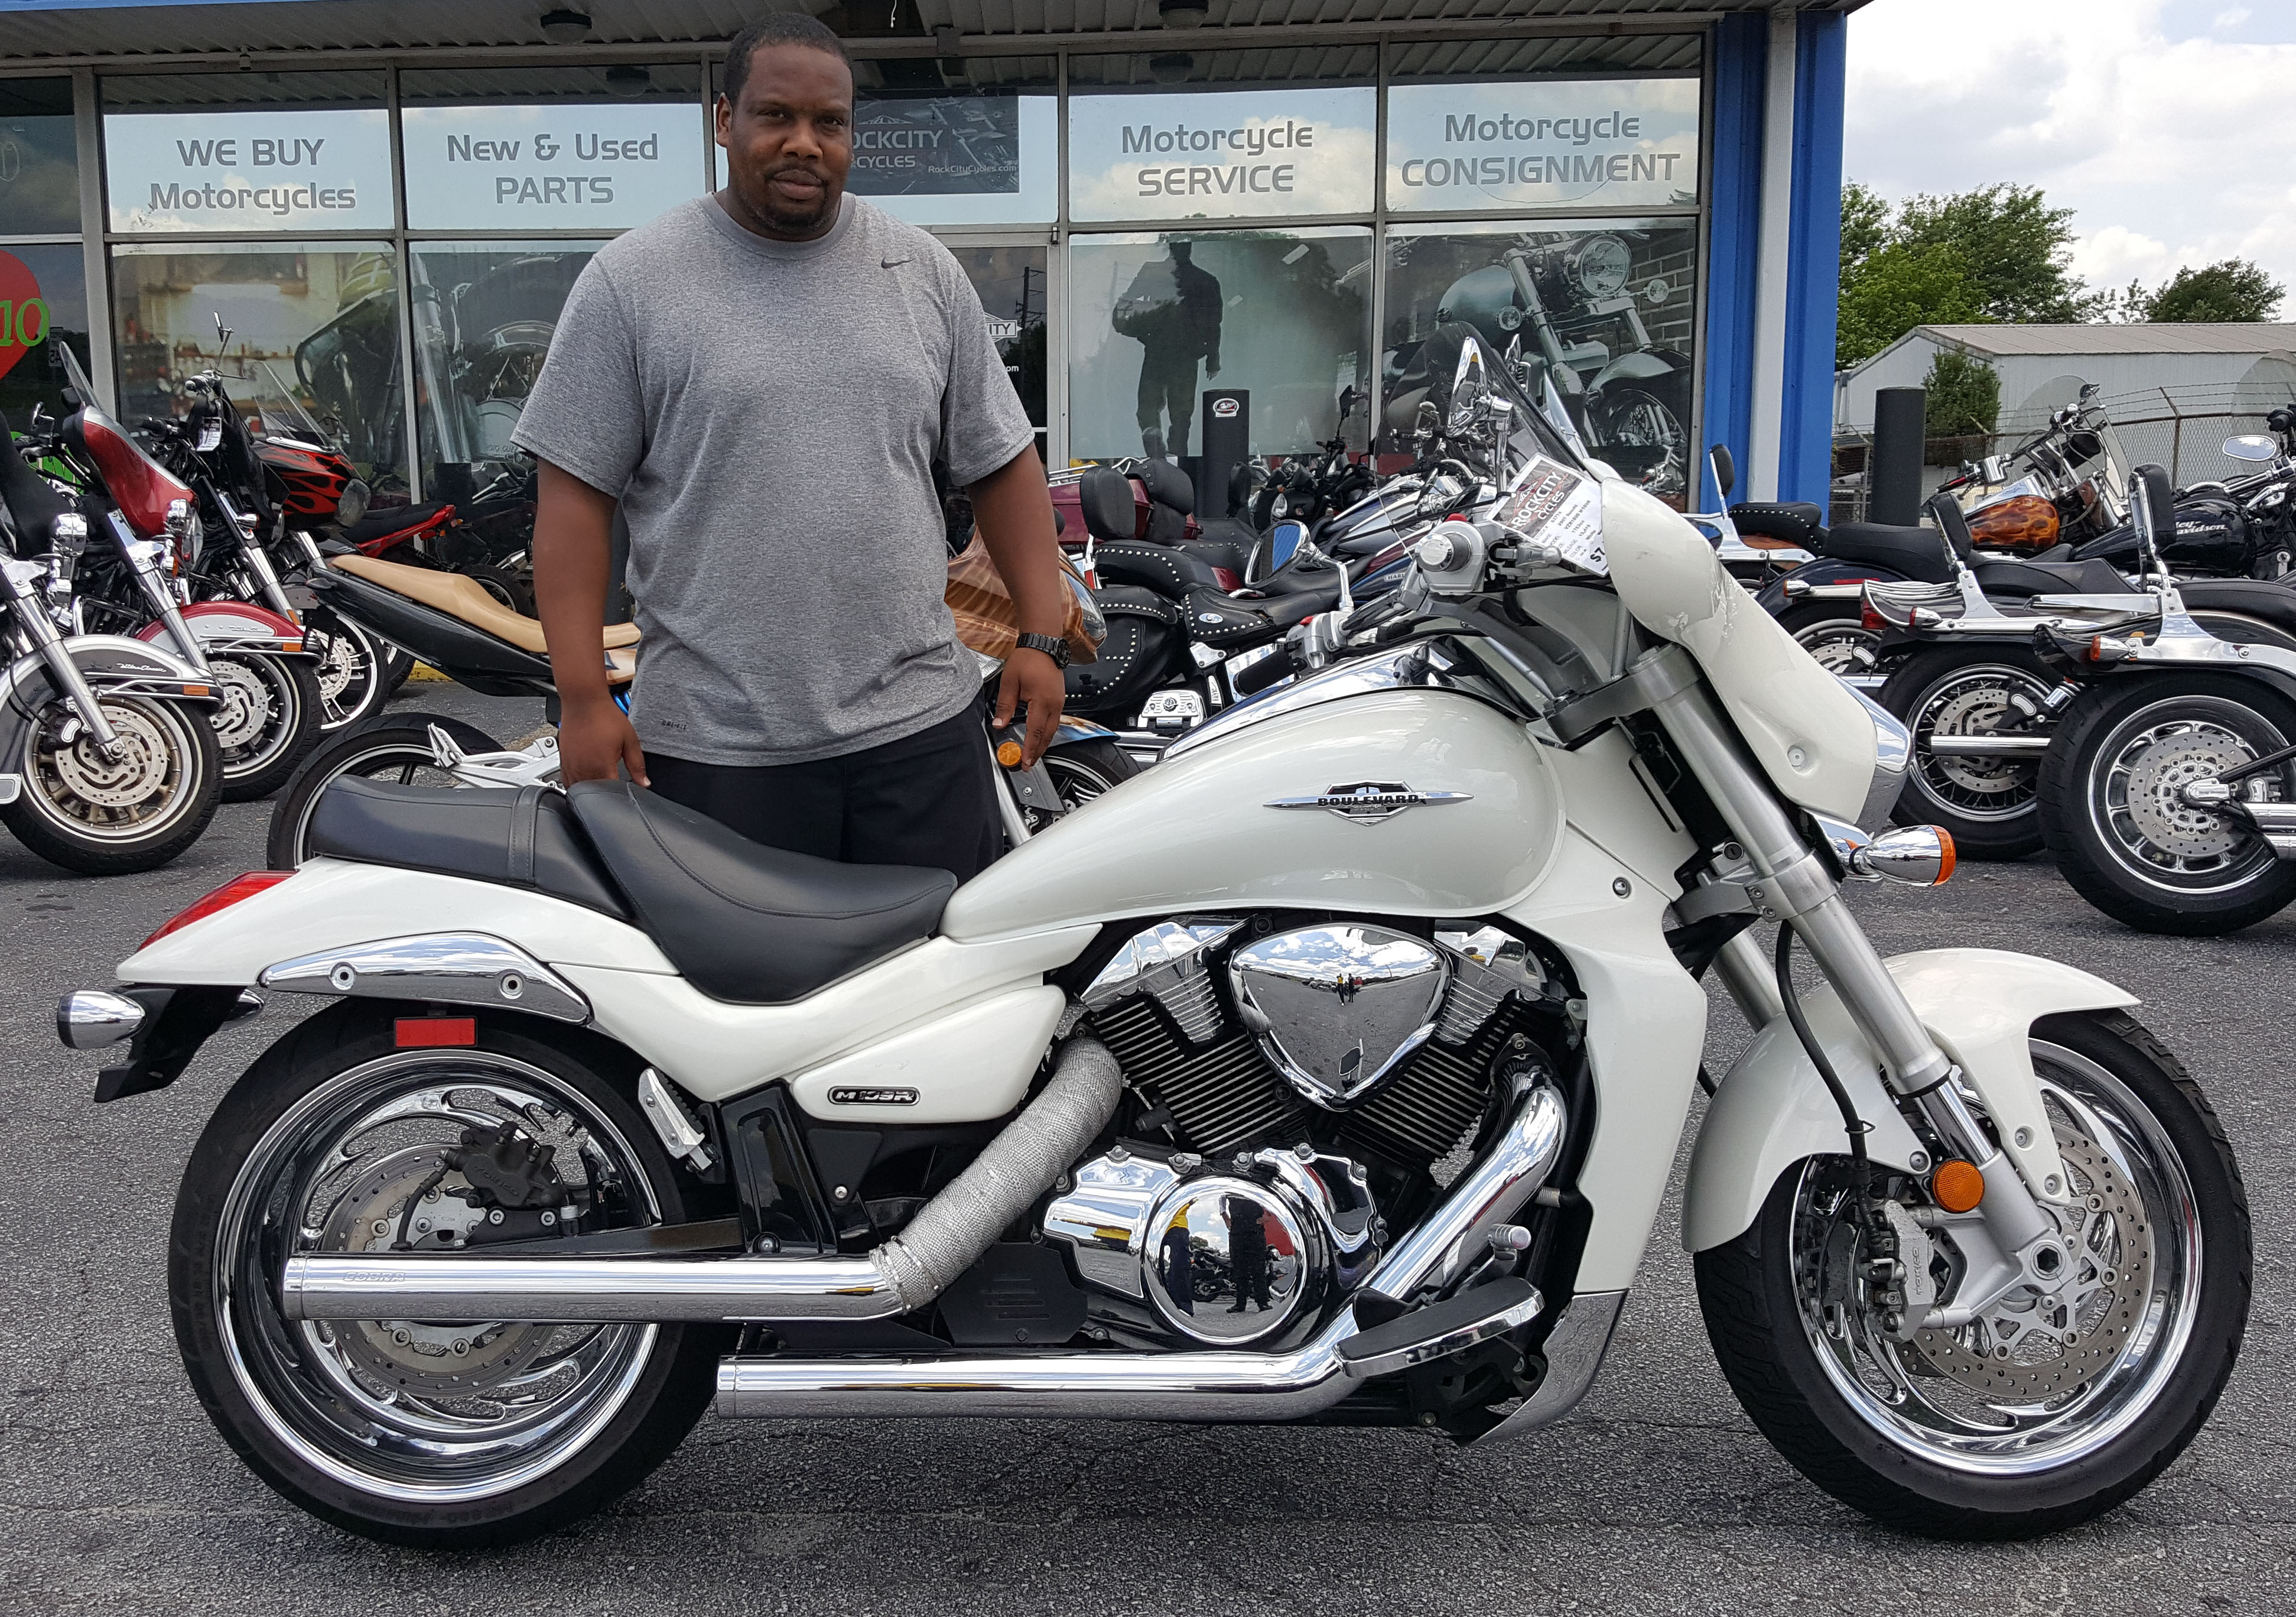 Honda Certified Pre Owned Financing >> Lanxton J. with his 2007 Suzuki Boulevard M109R – Rock City Cycles